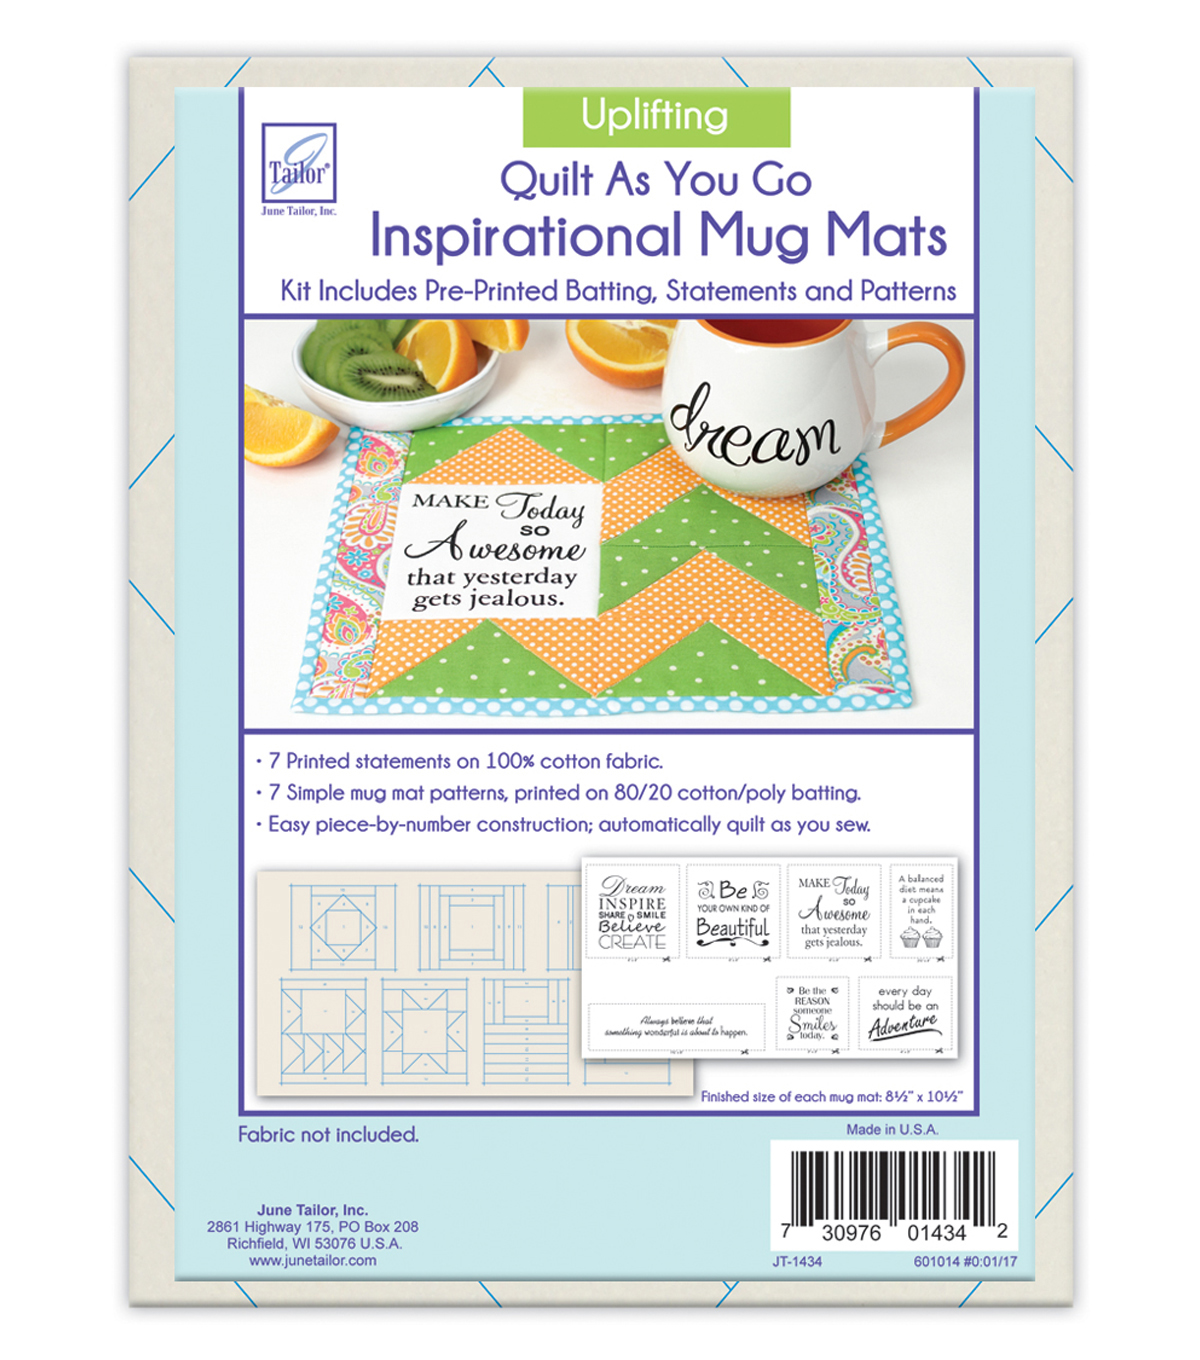 June Tailor® Inspirational Mug Mats Uplifting Series